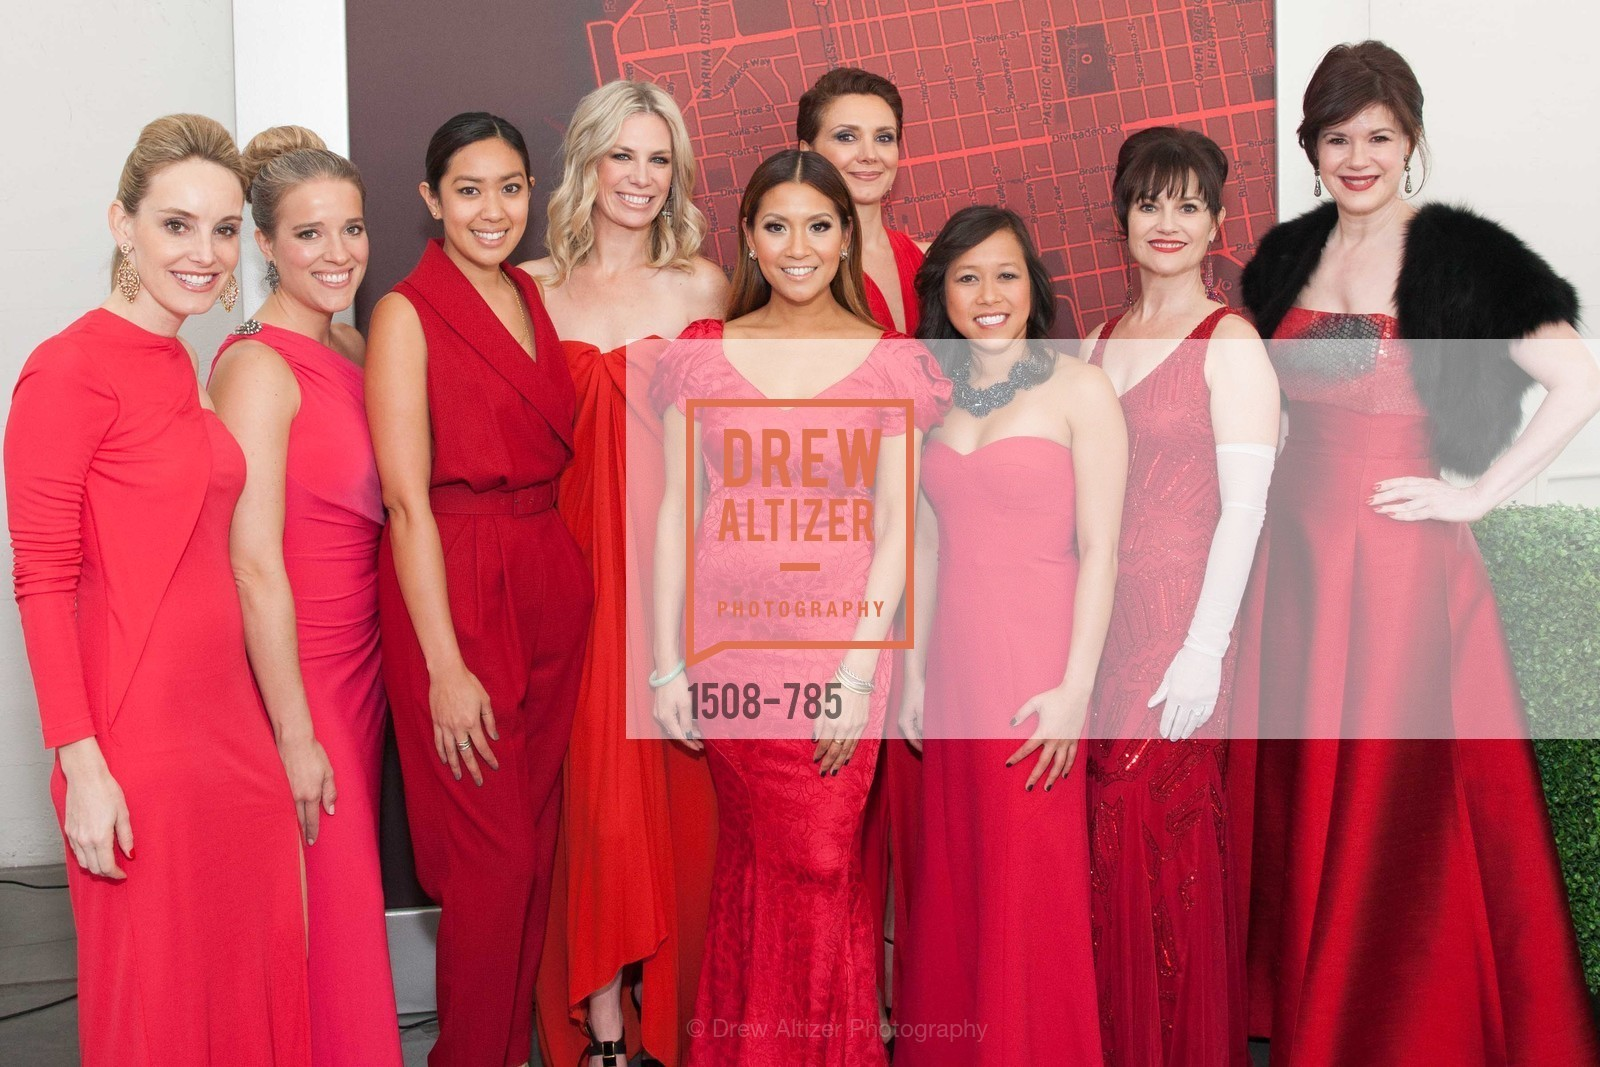 Lindsey Haswell, Shelly Carter, Ginie Brown, Colby Hallen, Lillian Phan, Maryam Ghajar, Julie Le, V'Anne Singleton, Elaine Mellis, 2015 RED CROSS Gala, US, April 11th, 2015,Drew Altizer, Drew Altizer Photography, full-service agency, private events, San Francisco photographer, photographer california